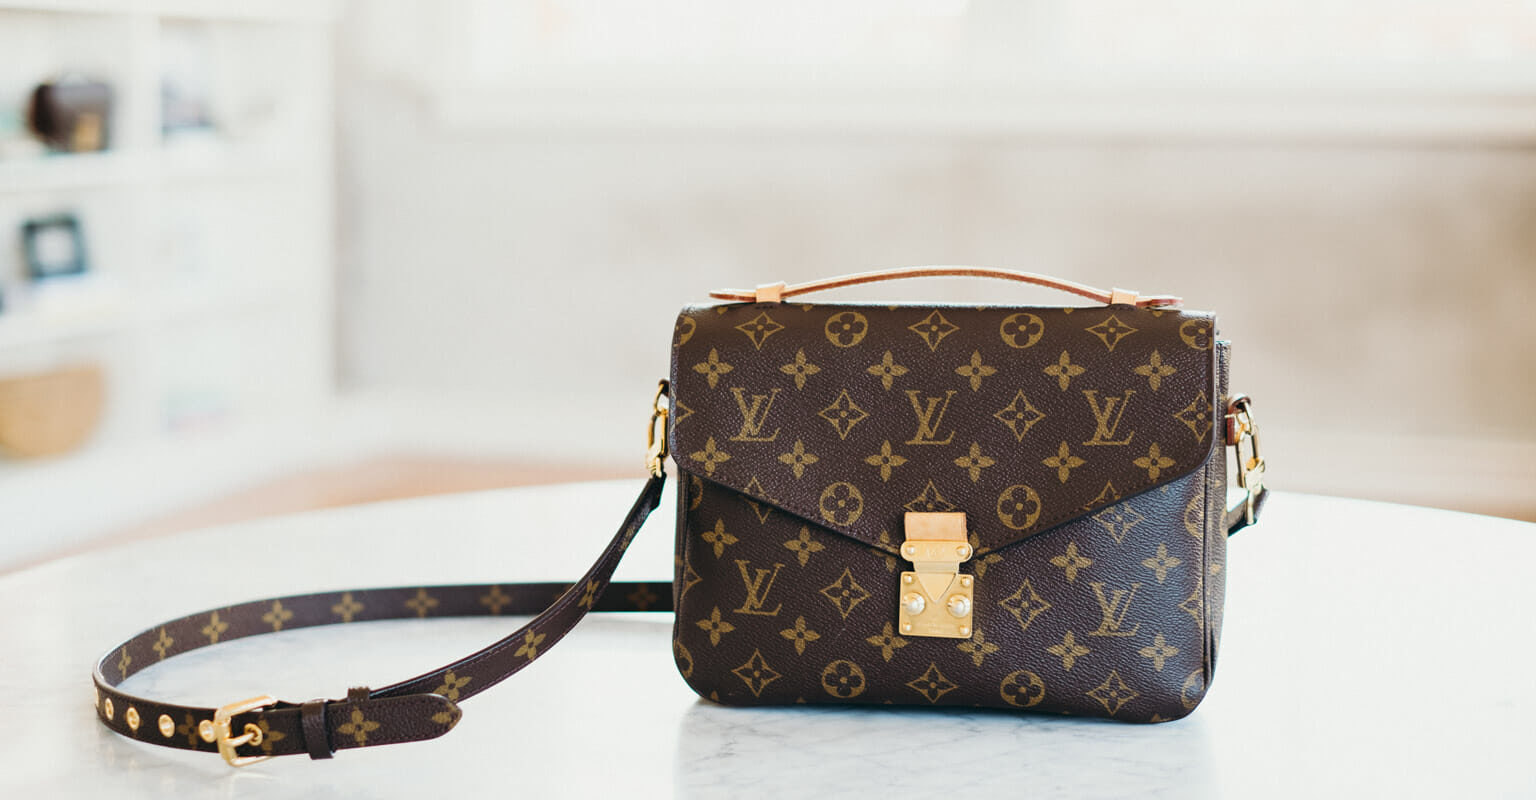 28023c2138b What's In My Purse: Louis Vuitton Pochette Metis